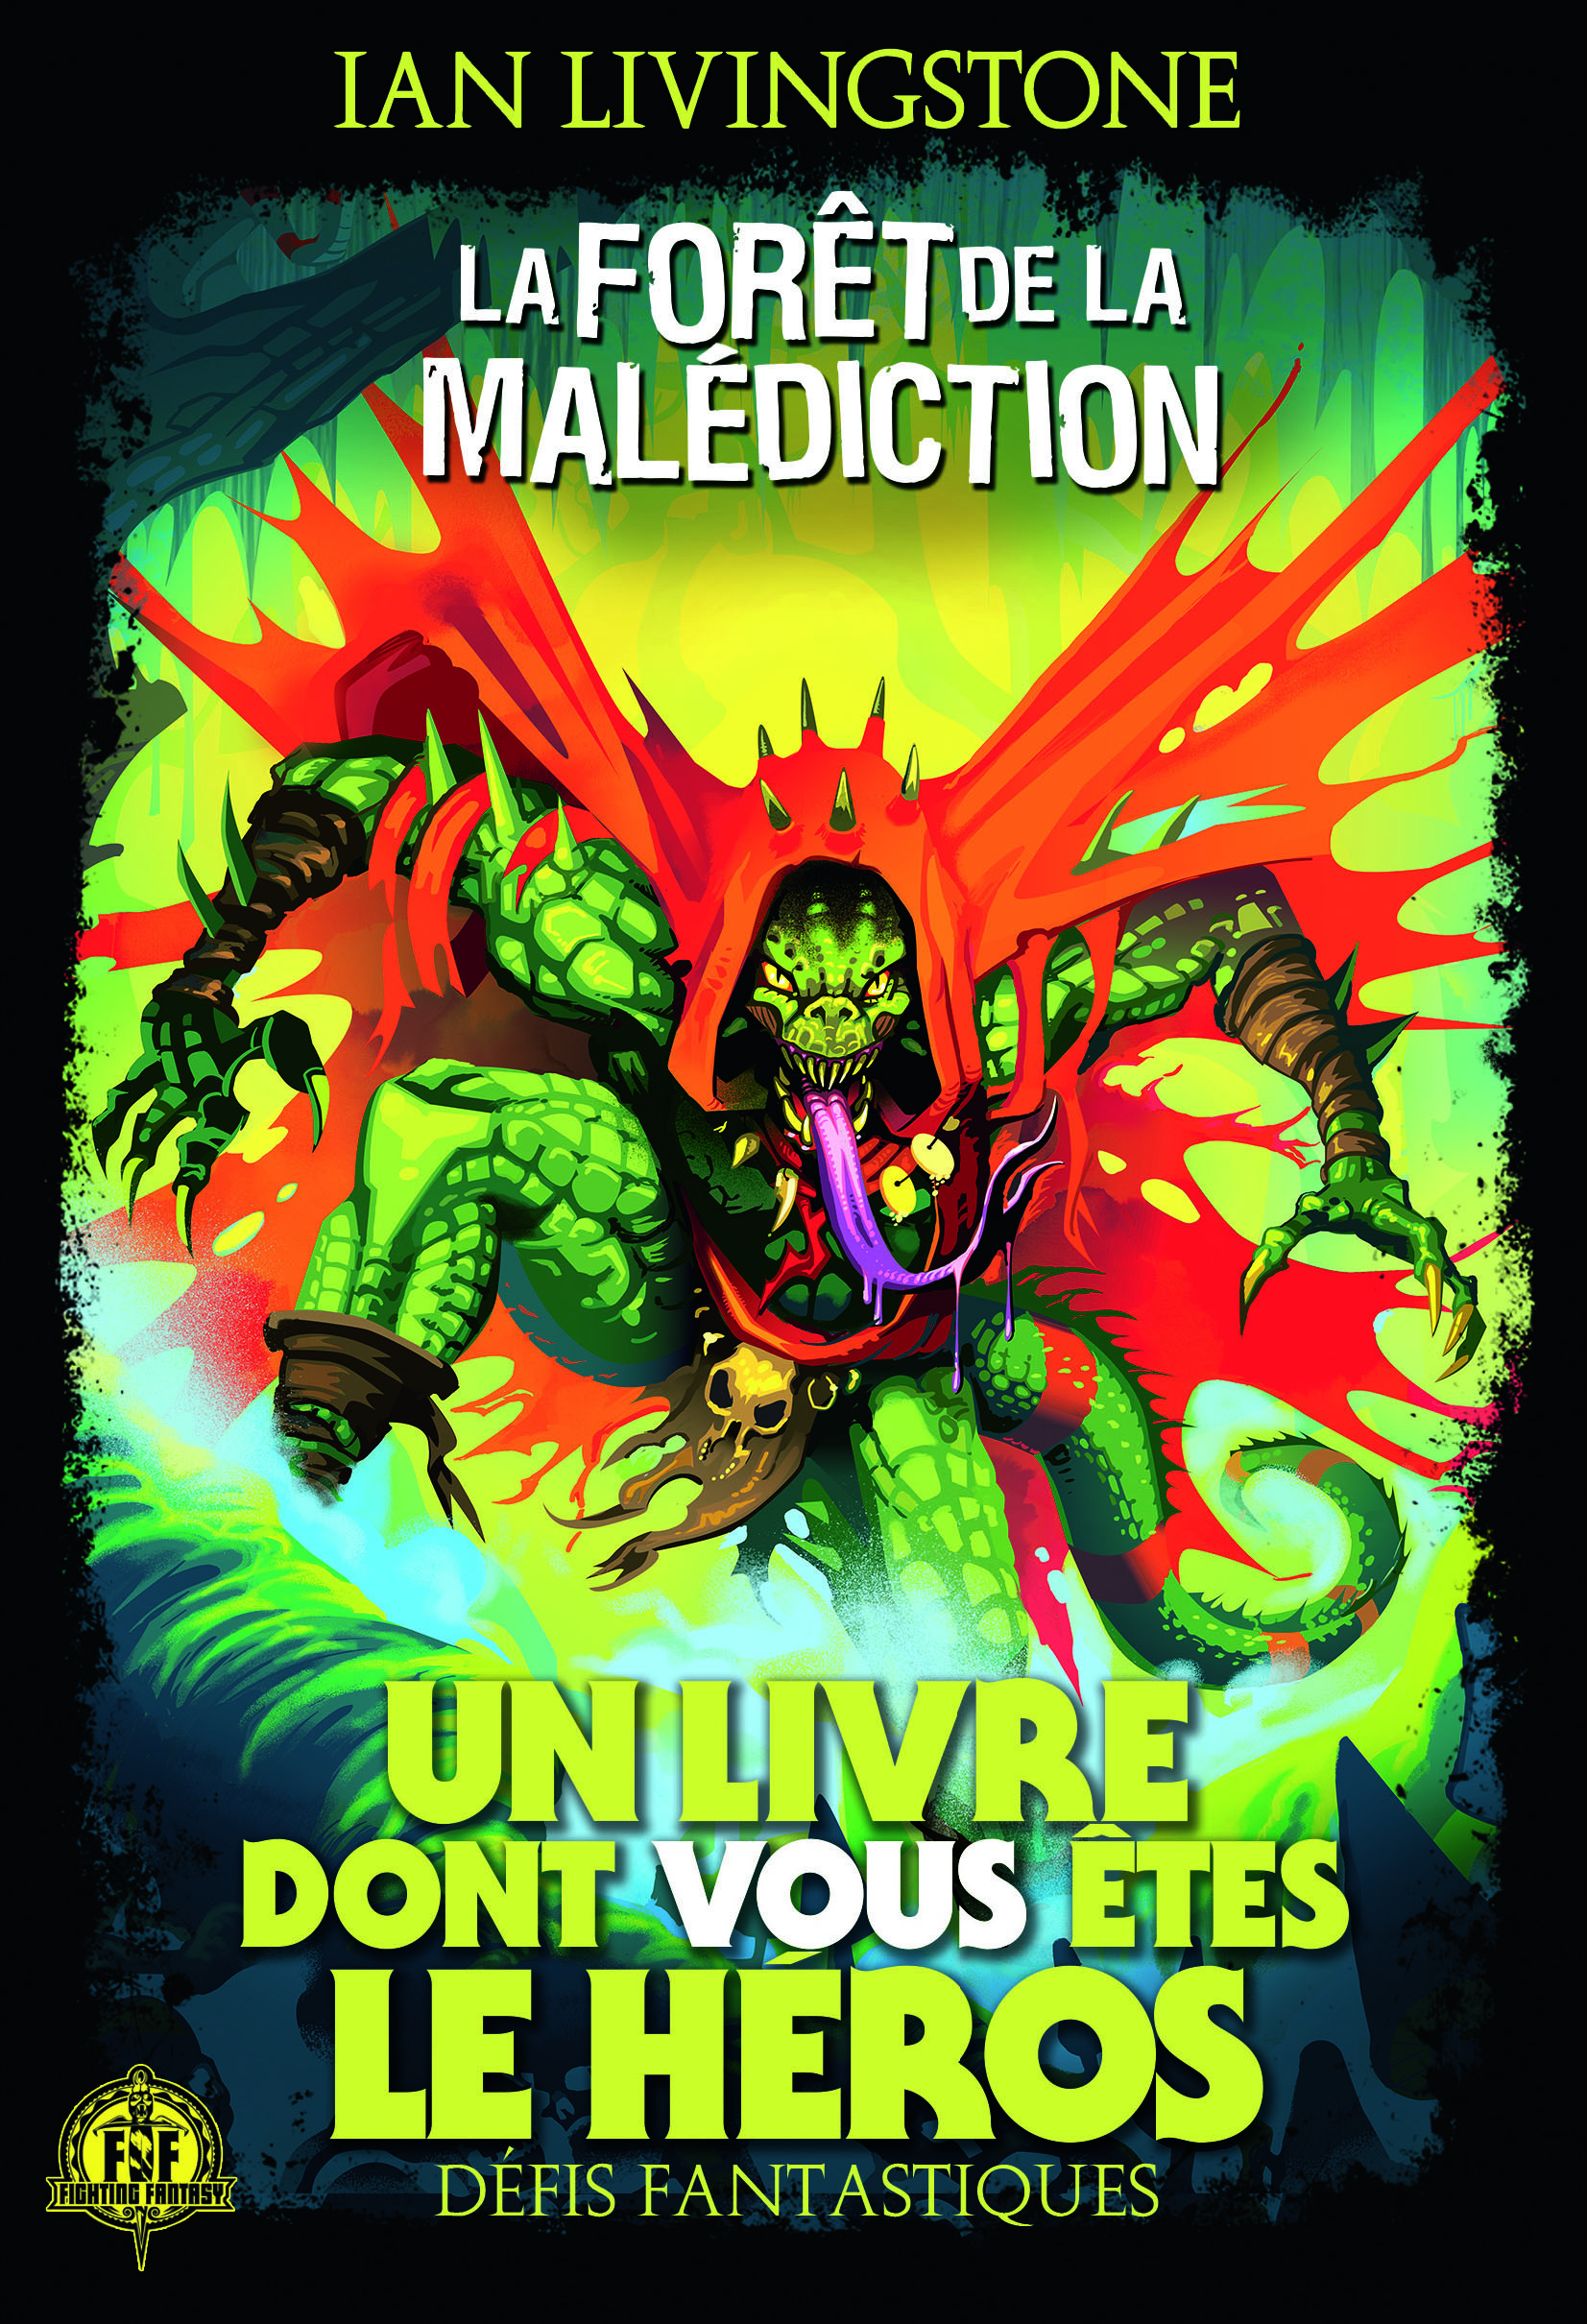 LA FORET DE LA MALEDICTION